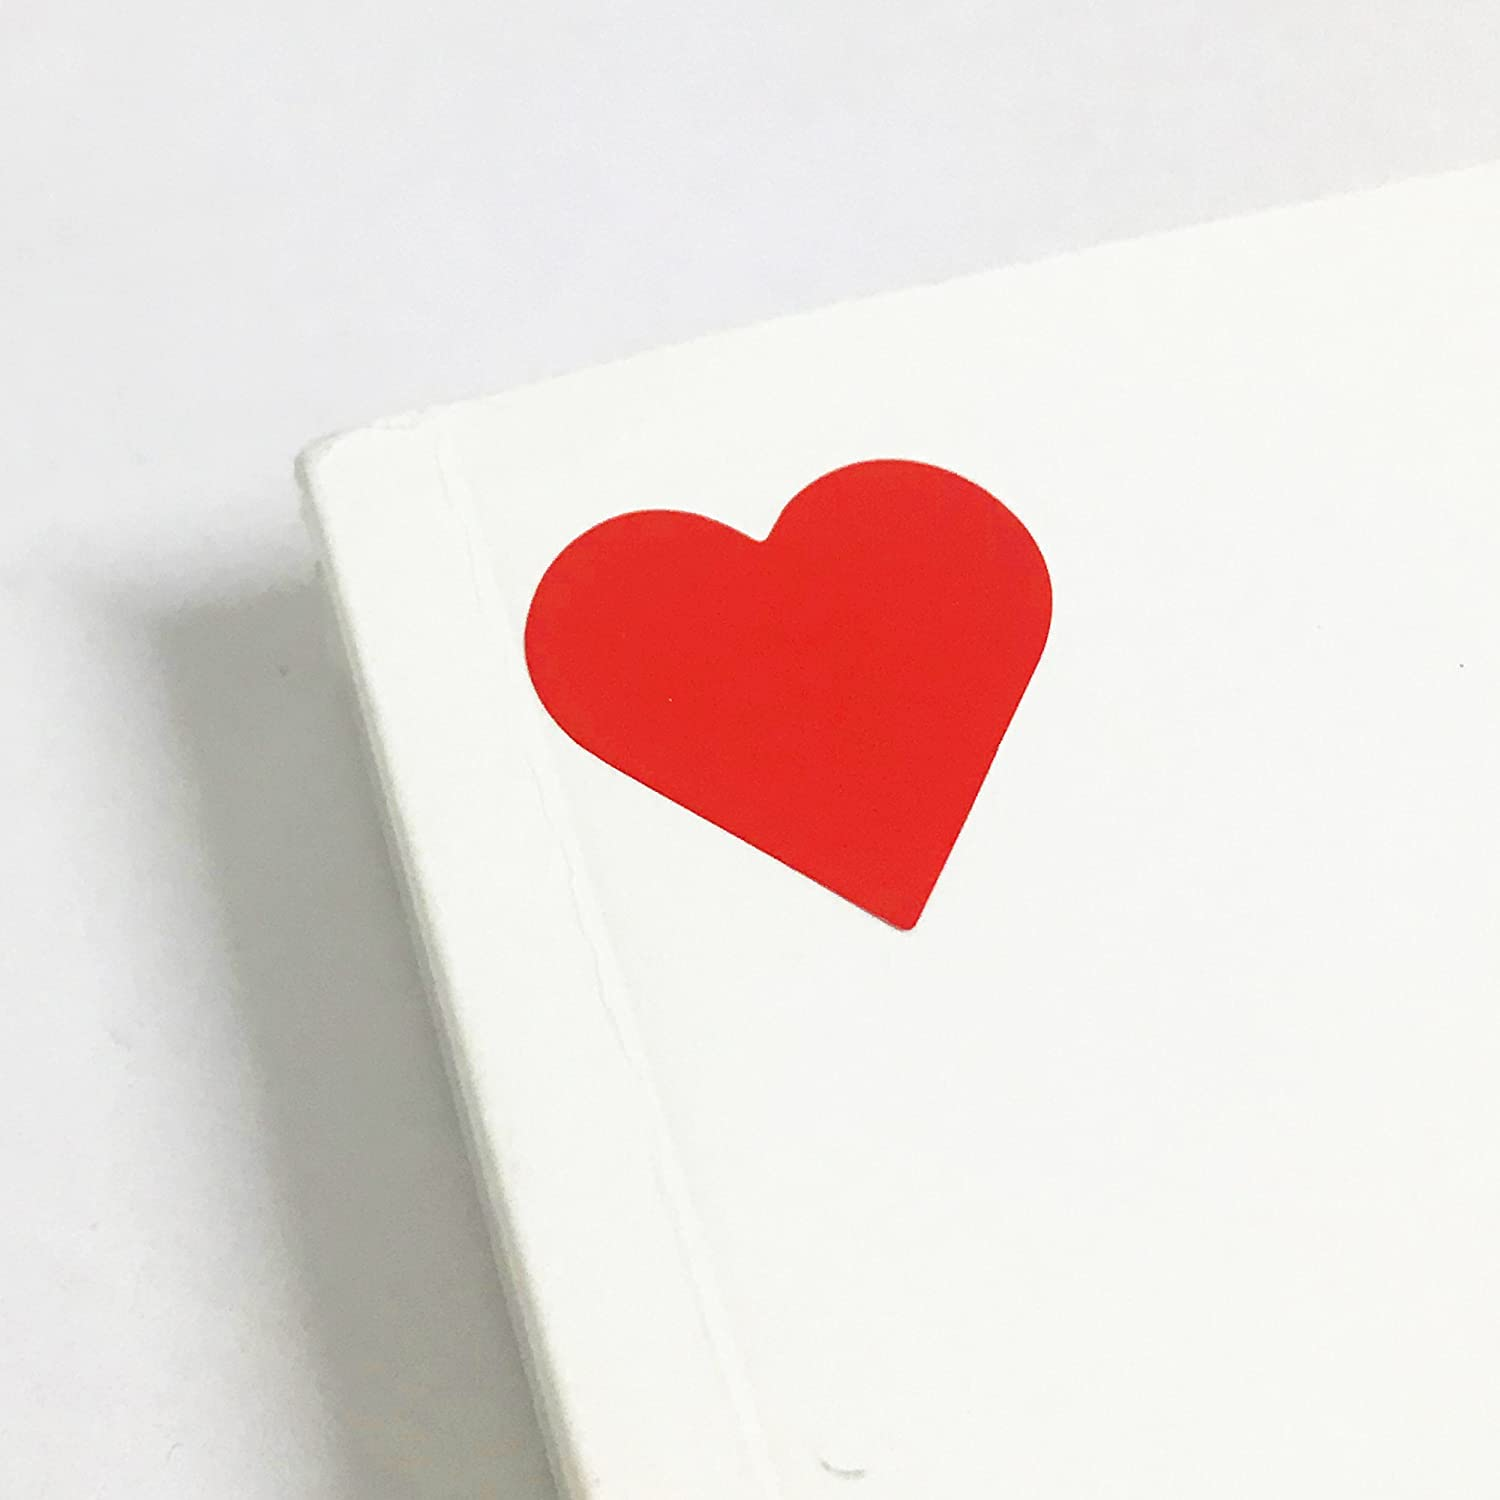 50 Sheets Pack of 1200 1 Red Heart Sticker Labels